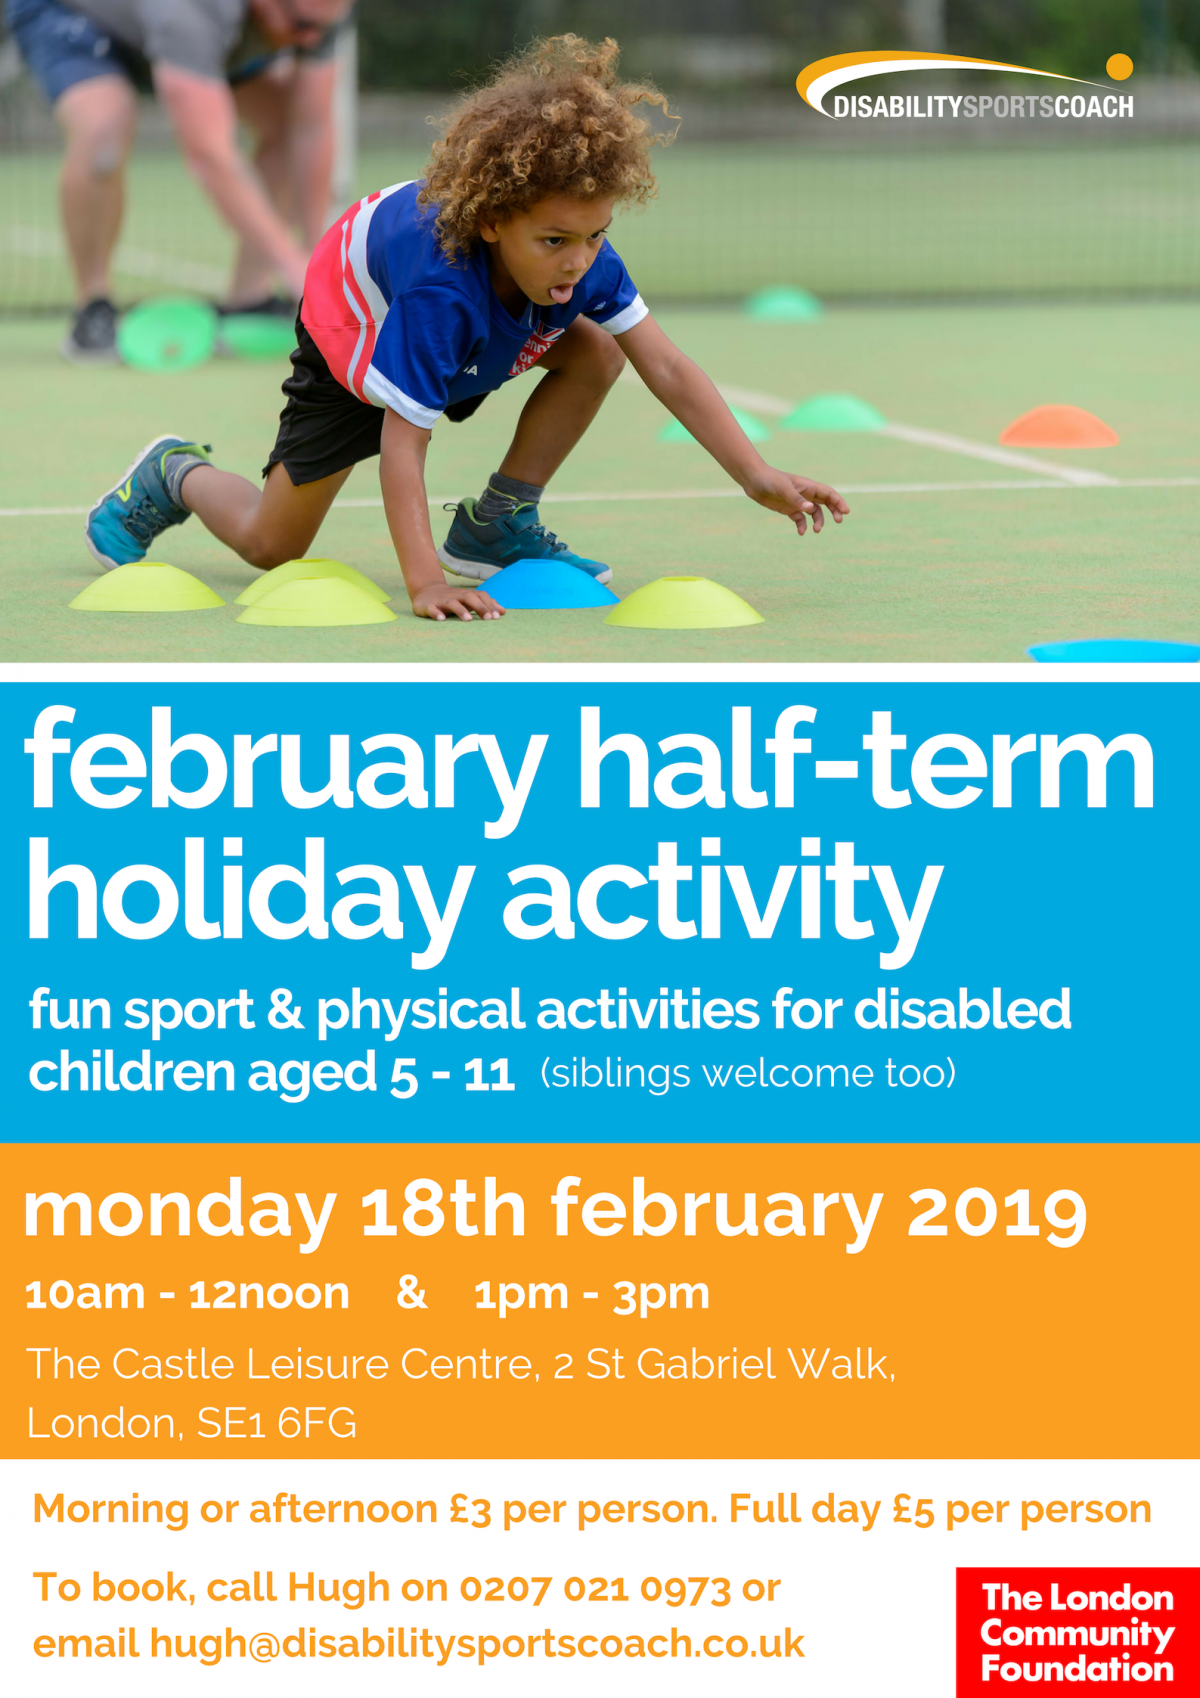 Disability Sports Coach February Half Term Activity Holiday Disability Sport